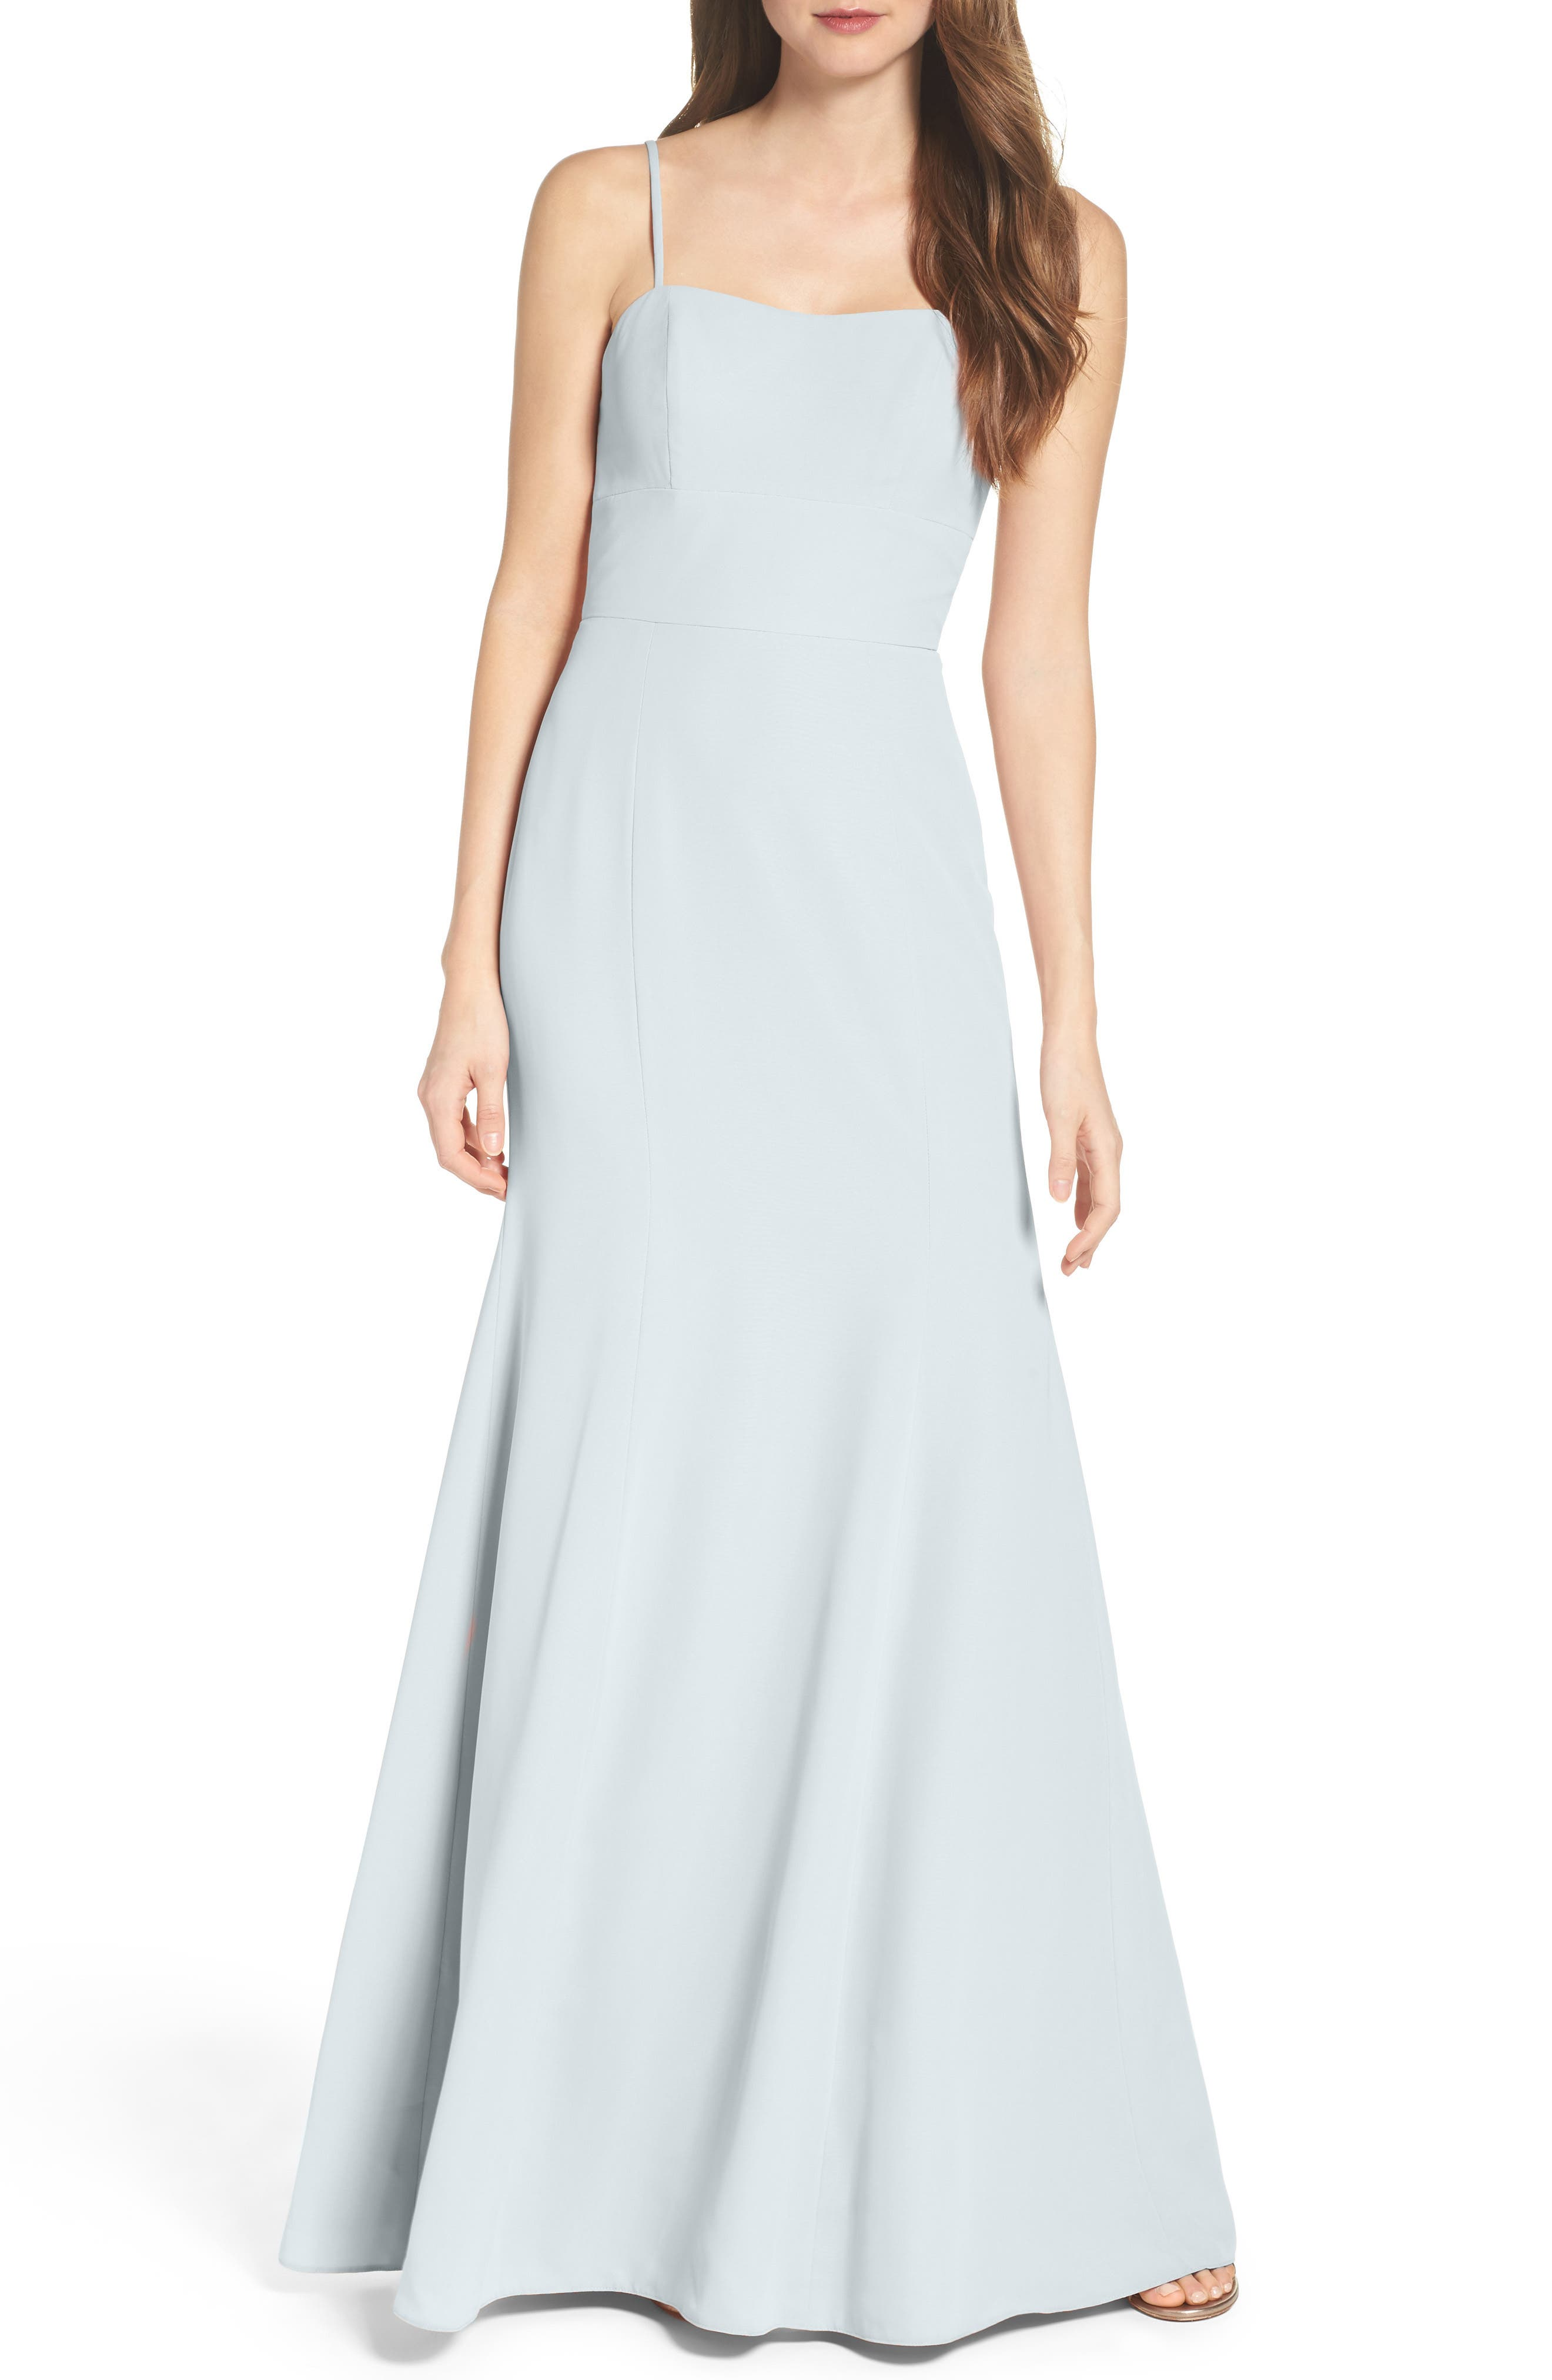 Convertible Strap Chiffon Gown,                             Alternate thumbnail 3, color,                             300